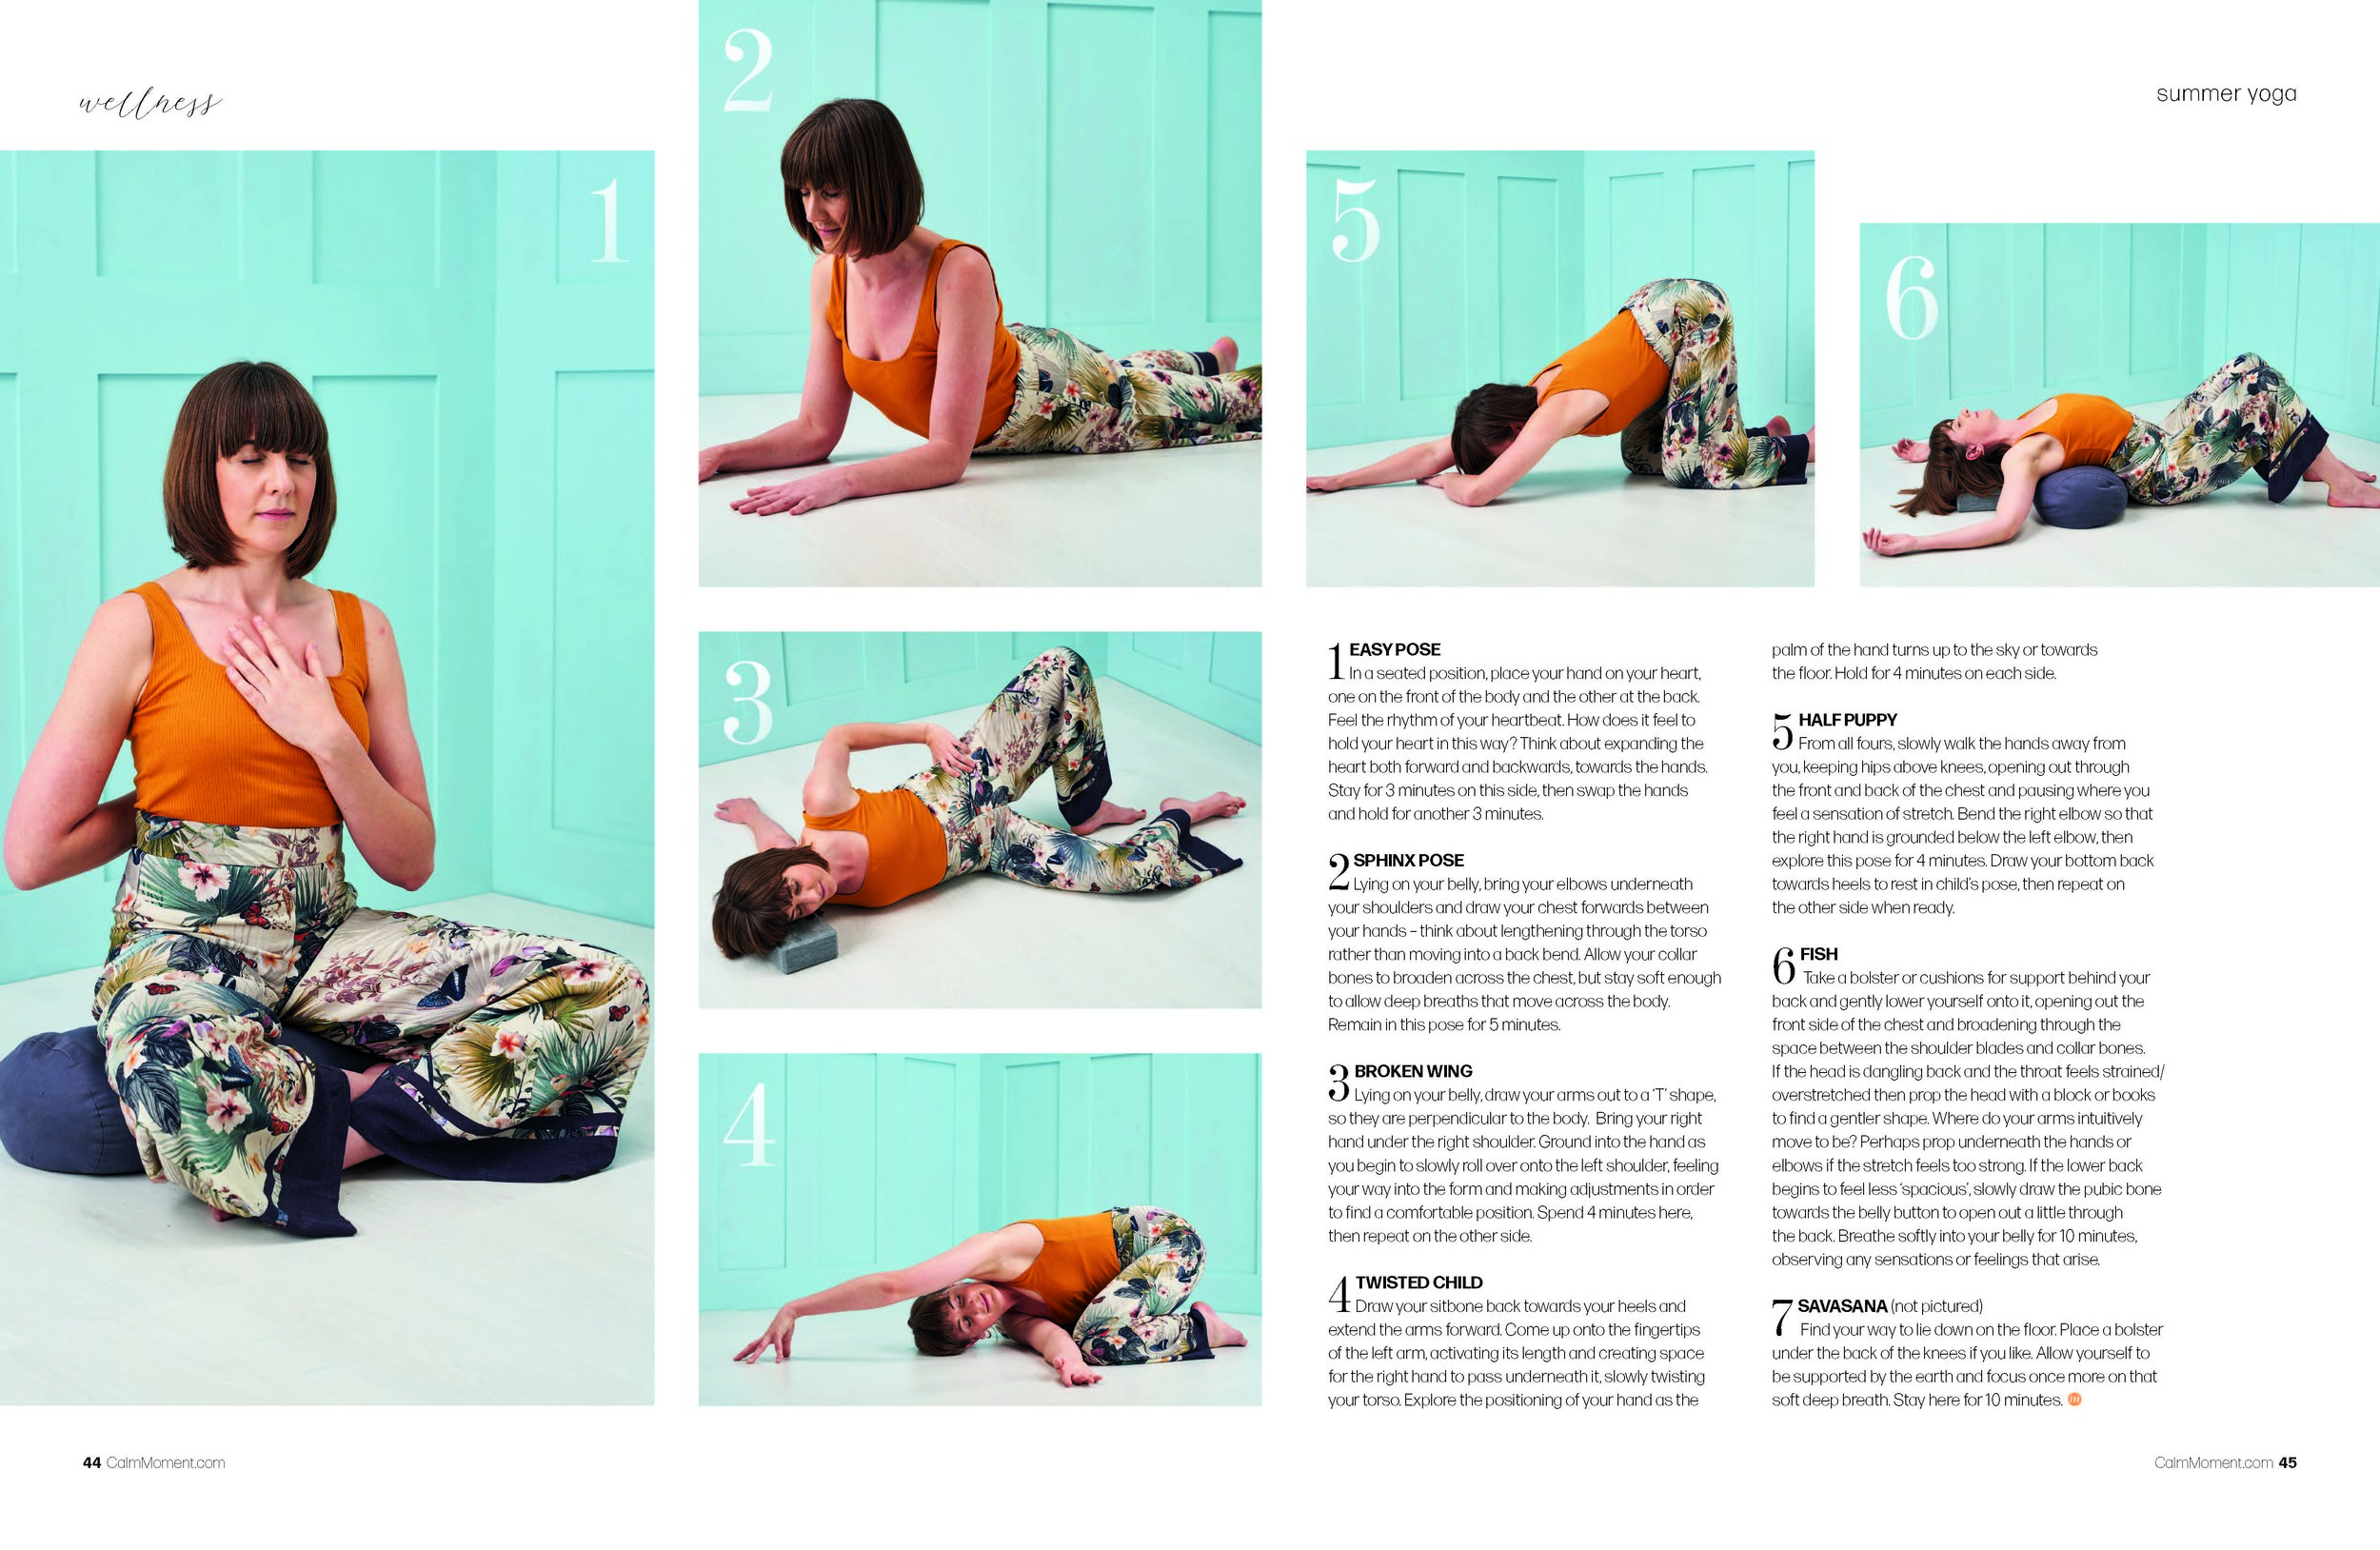 ITM_026_p042-045_Yoga_proof3_Page_2.jpg